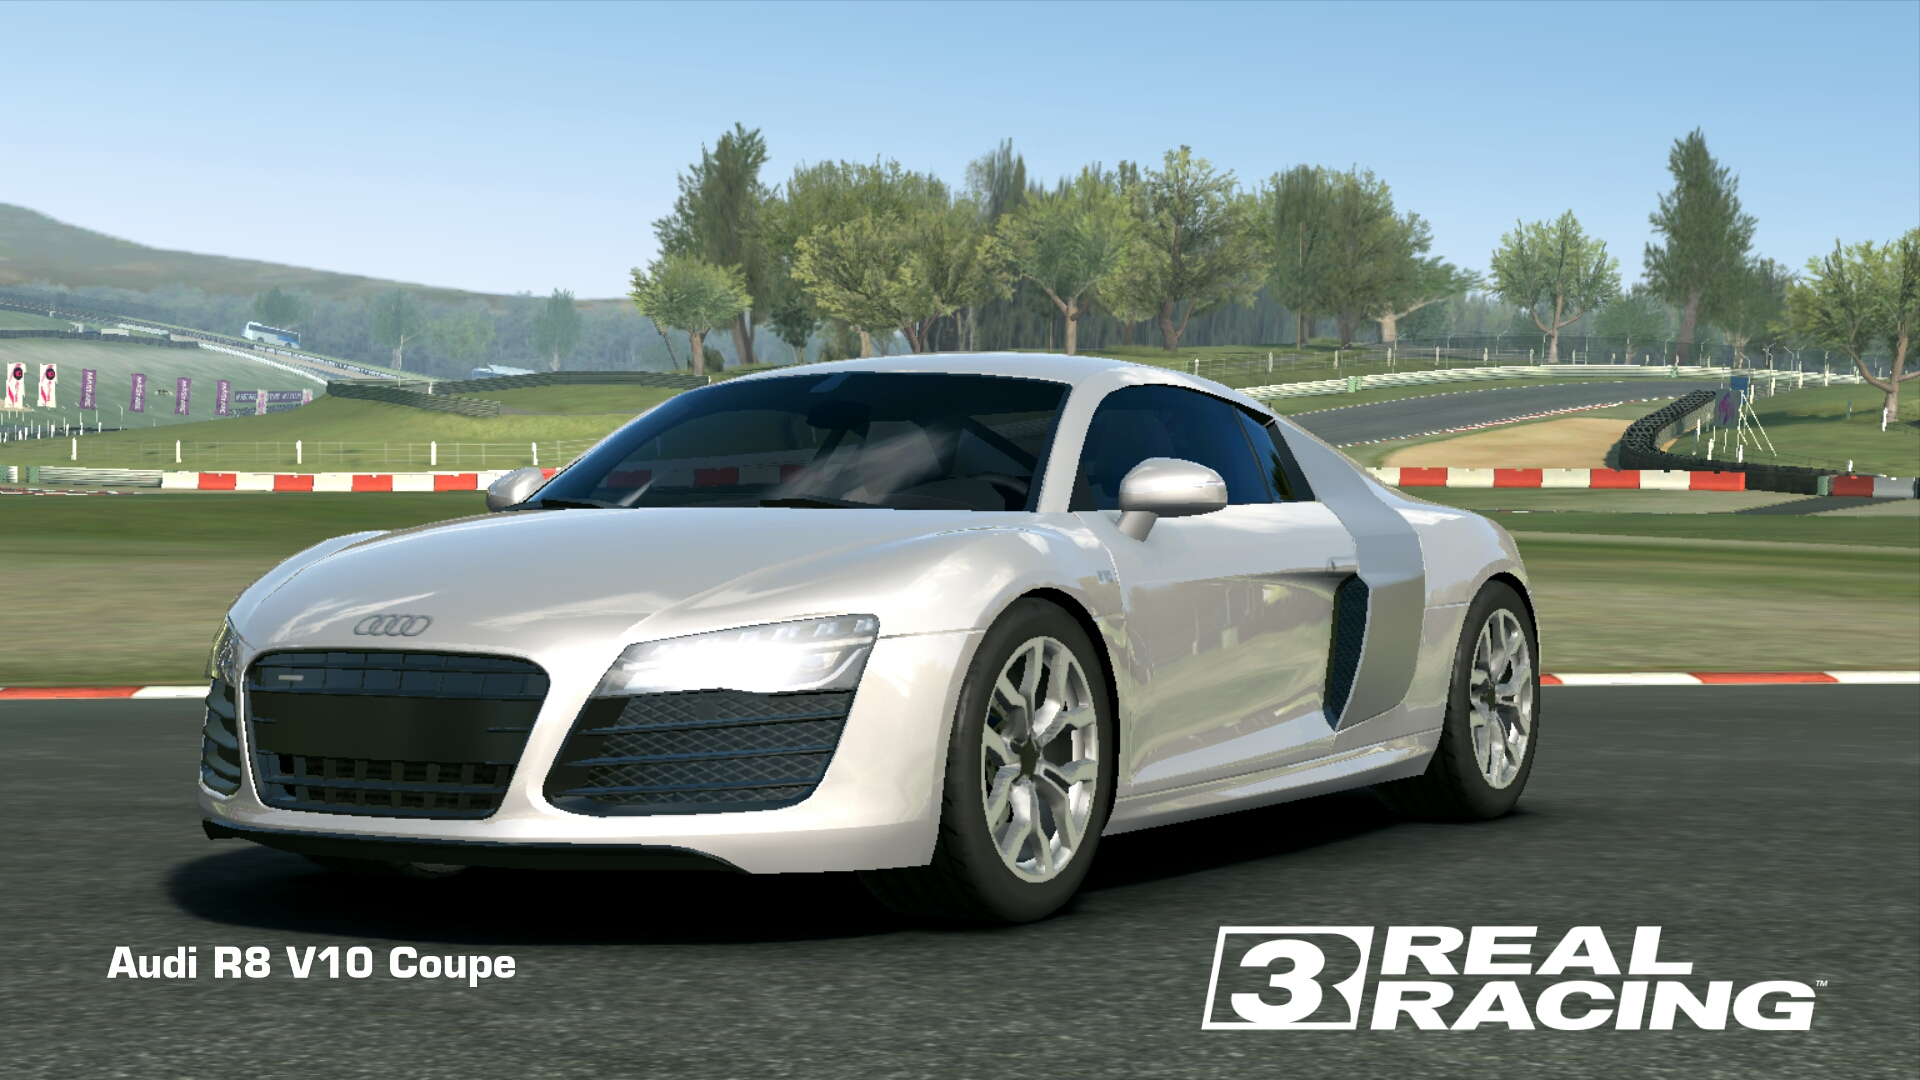 Showcase Audi R8 V10 Coupe